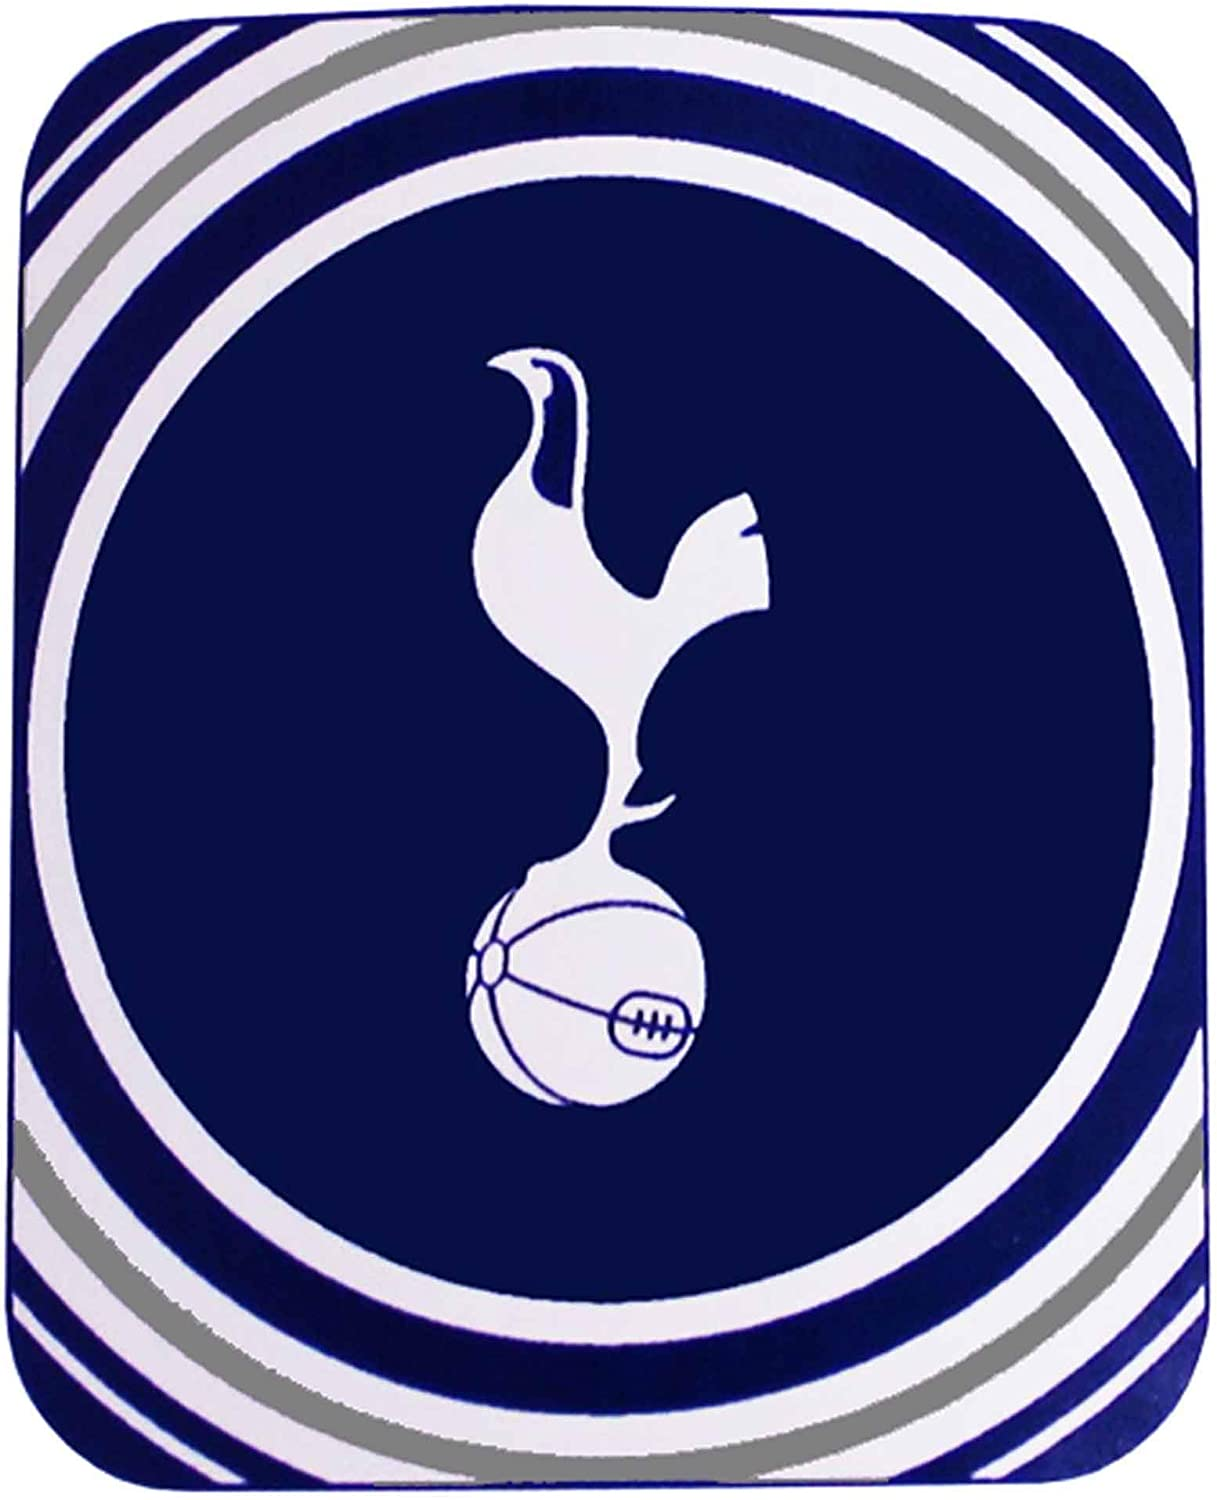 Official Tottenham Hotspur Spurs Fleece Blanket Throw For The Home Or Car 100 Polyester 125cm X 150cm Amazon Co Uk Kitchen Home